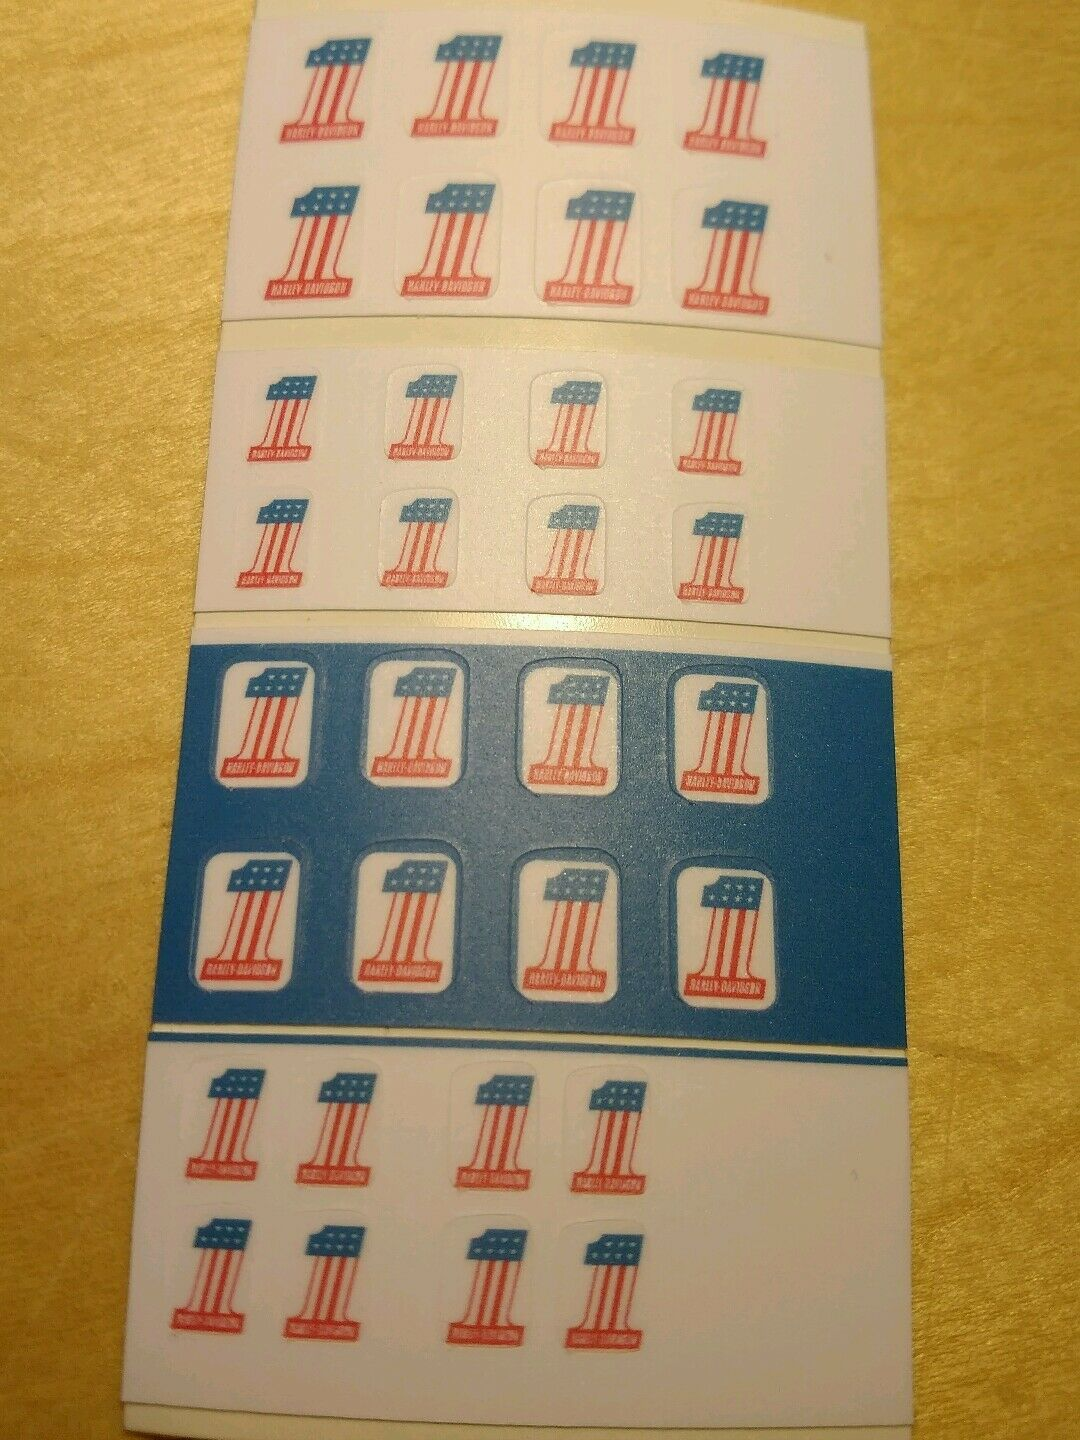 Evel knievel stunt cycle 1 number stickers